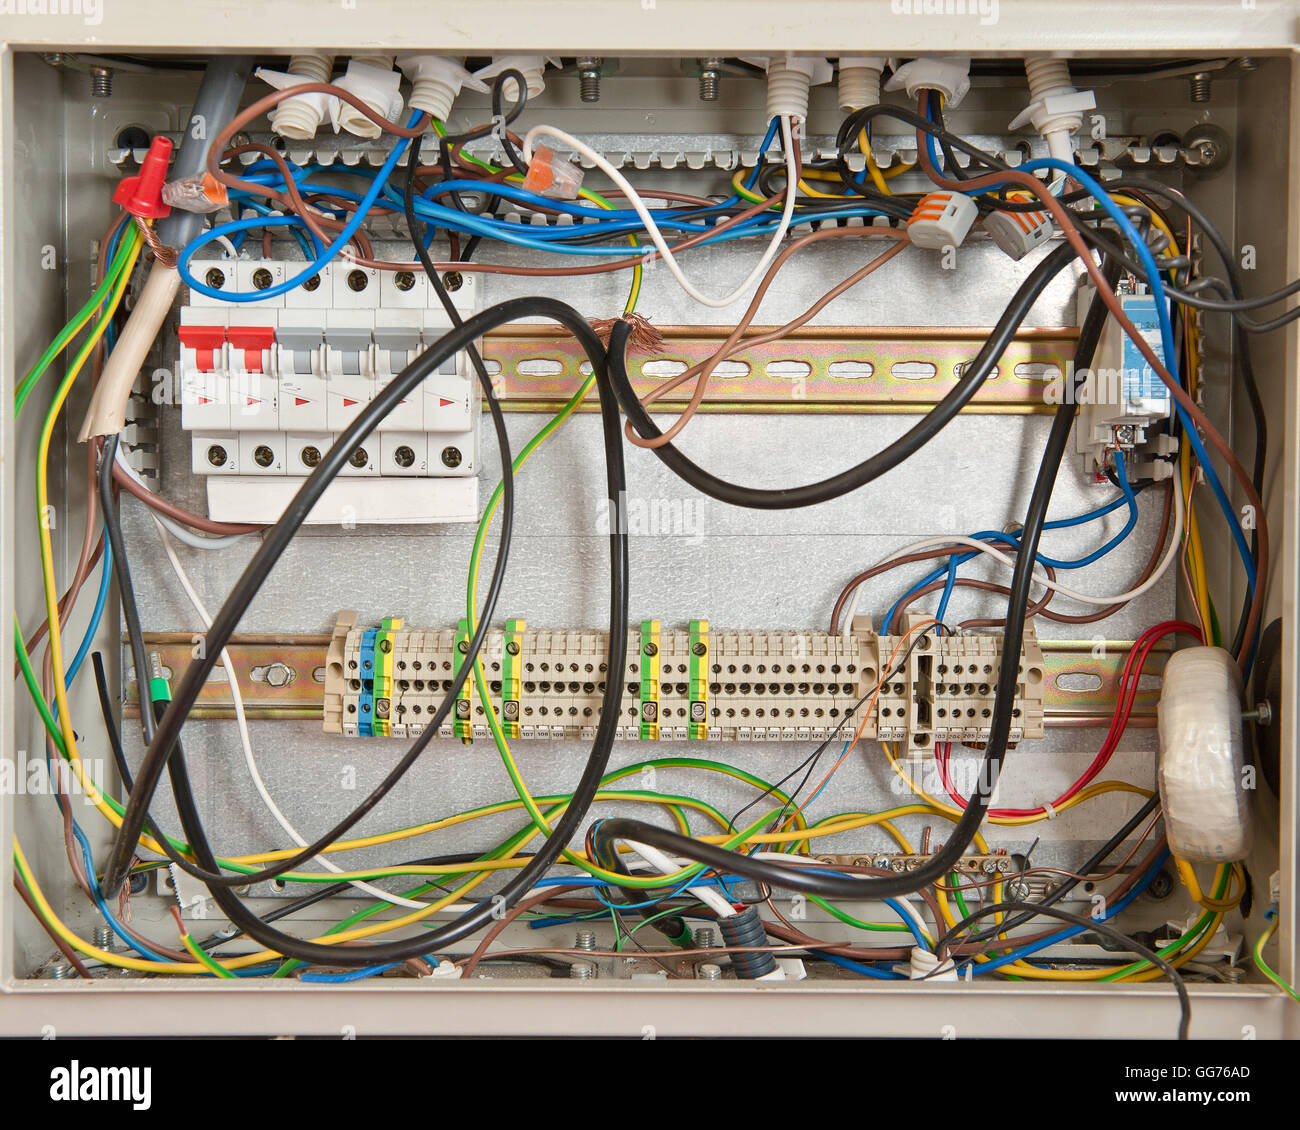 Electrical connections in a fuse box - Stock Image